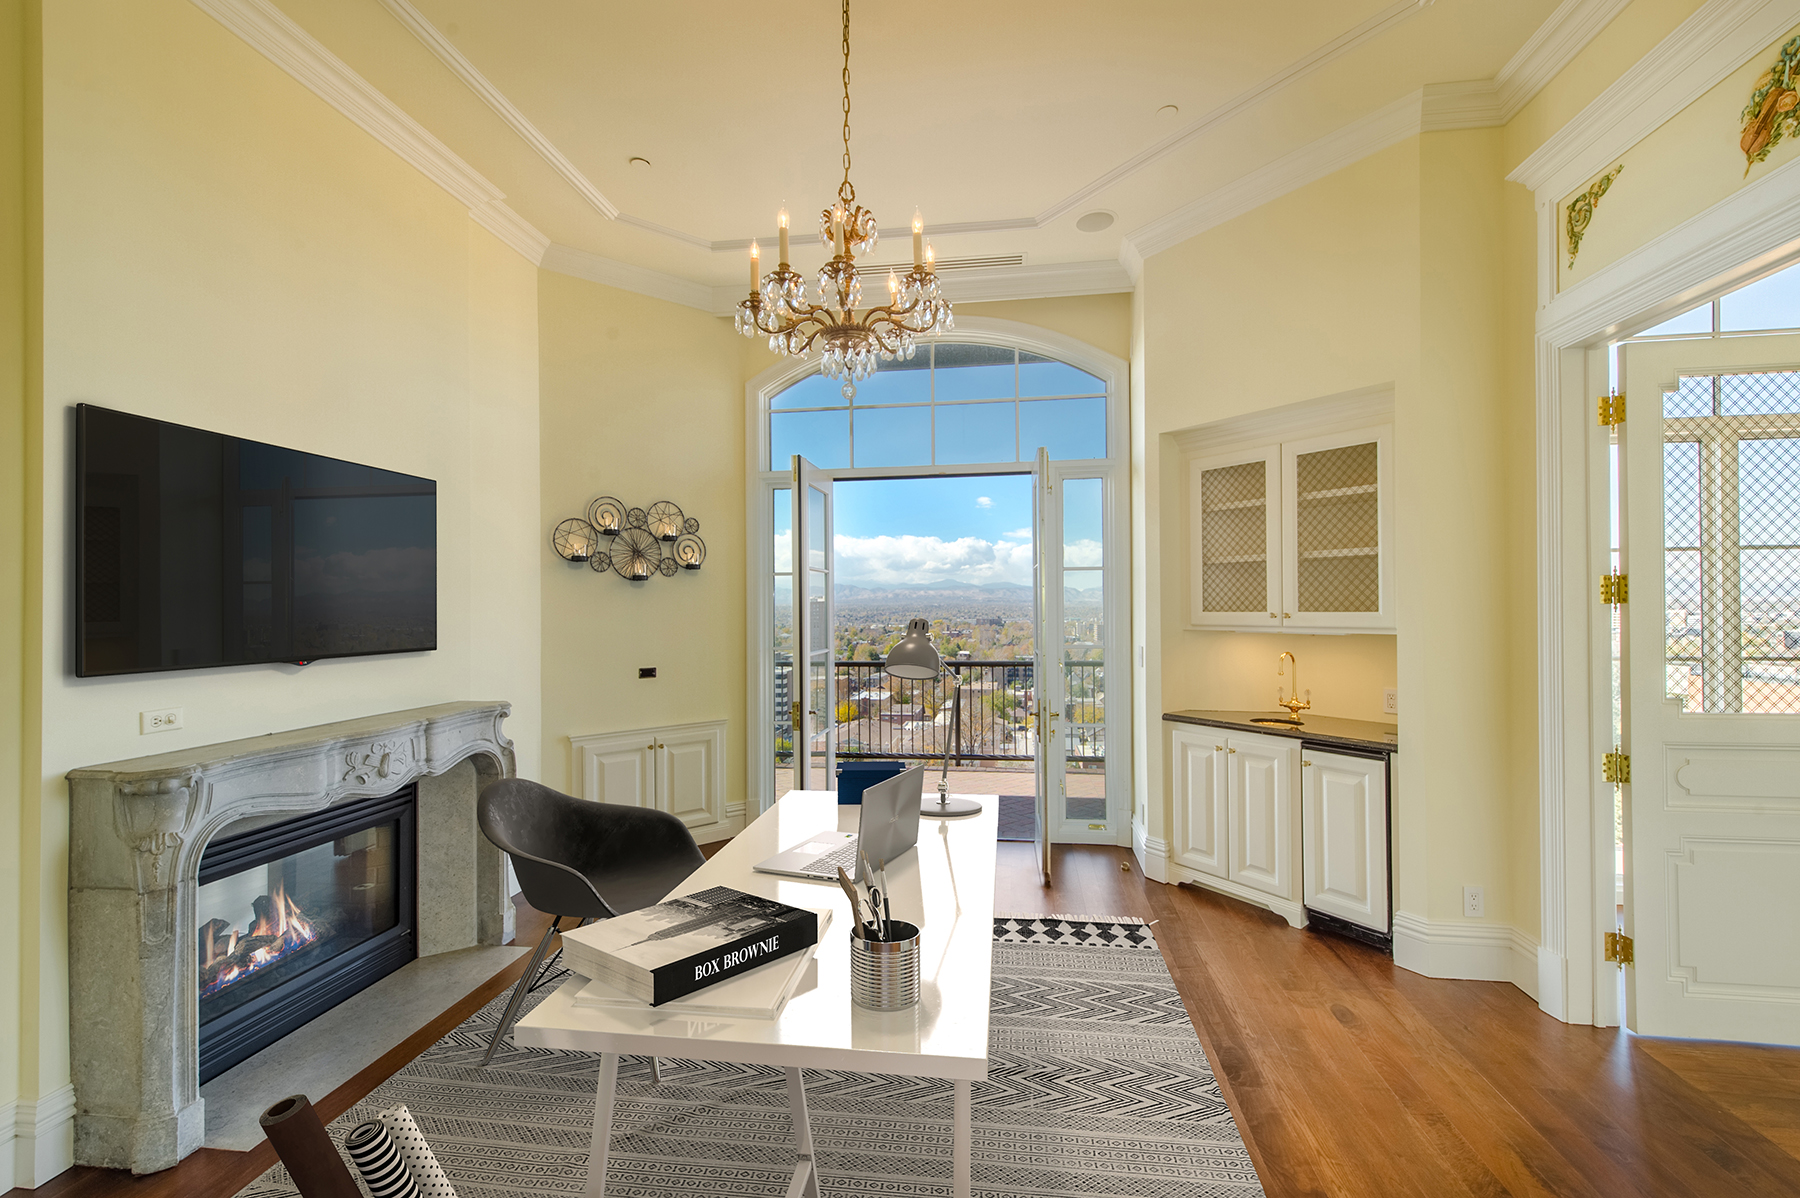 Additional photo for property listing at Exclusive Penthouse Offers Views of Denver Skyline and Rocky Mountains 25 Downing St, 12th Floor Penthouse Denver, Colorado 80218 United States